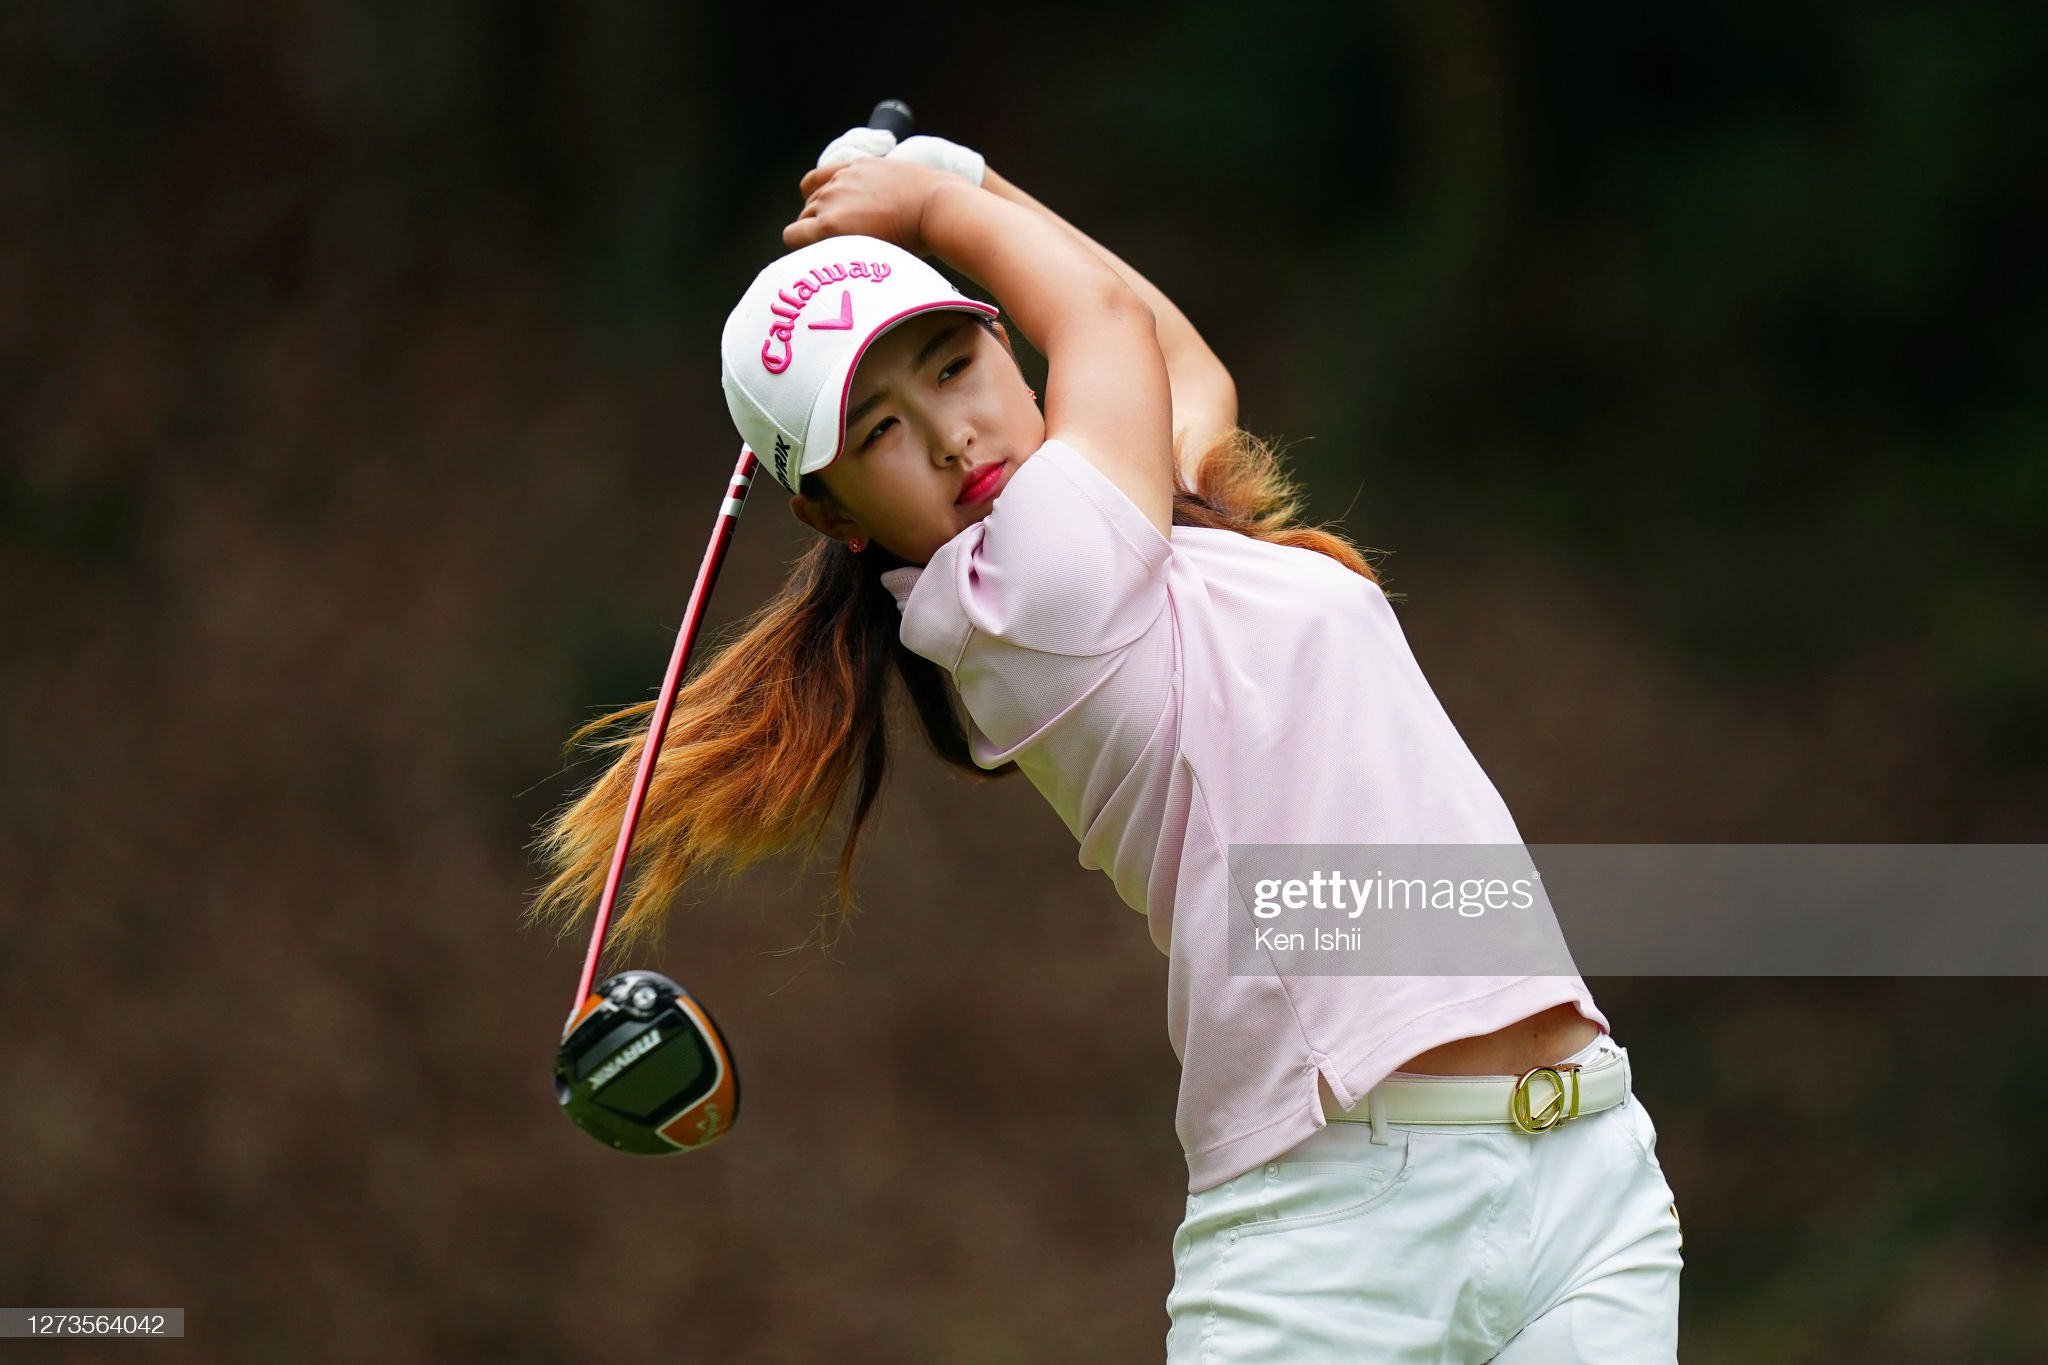 https://media.gettyimages.com/photos/hana-lee-of-south-korea-hits-her-tee-shot-on-the-1st-hole-during-the-picture-id1273564042?s=2048x2048